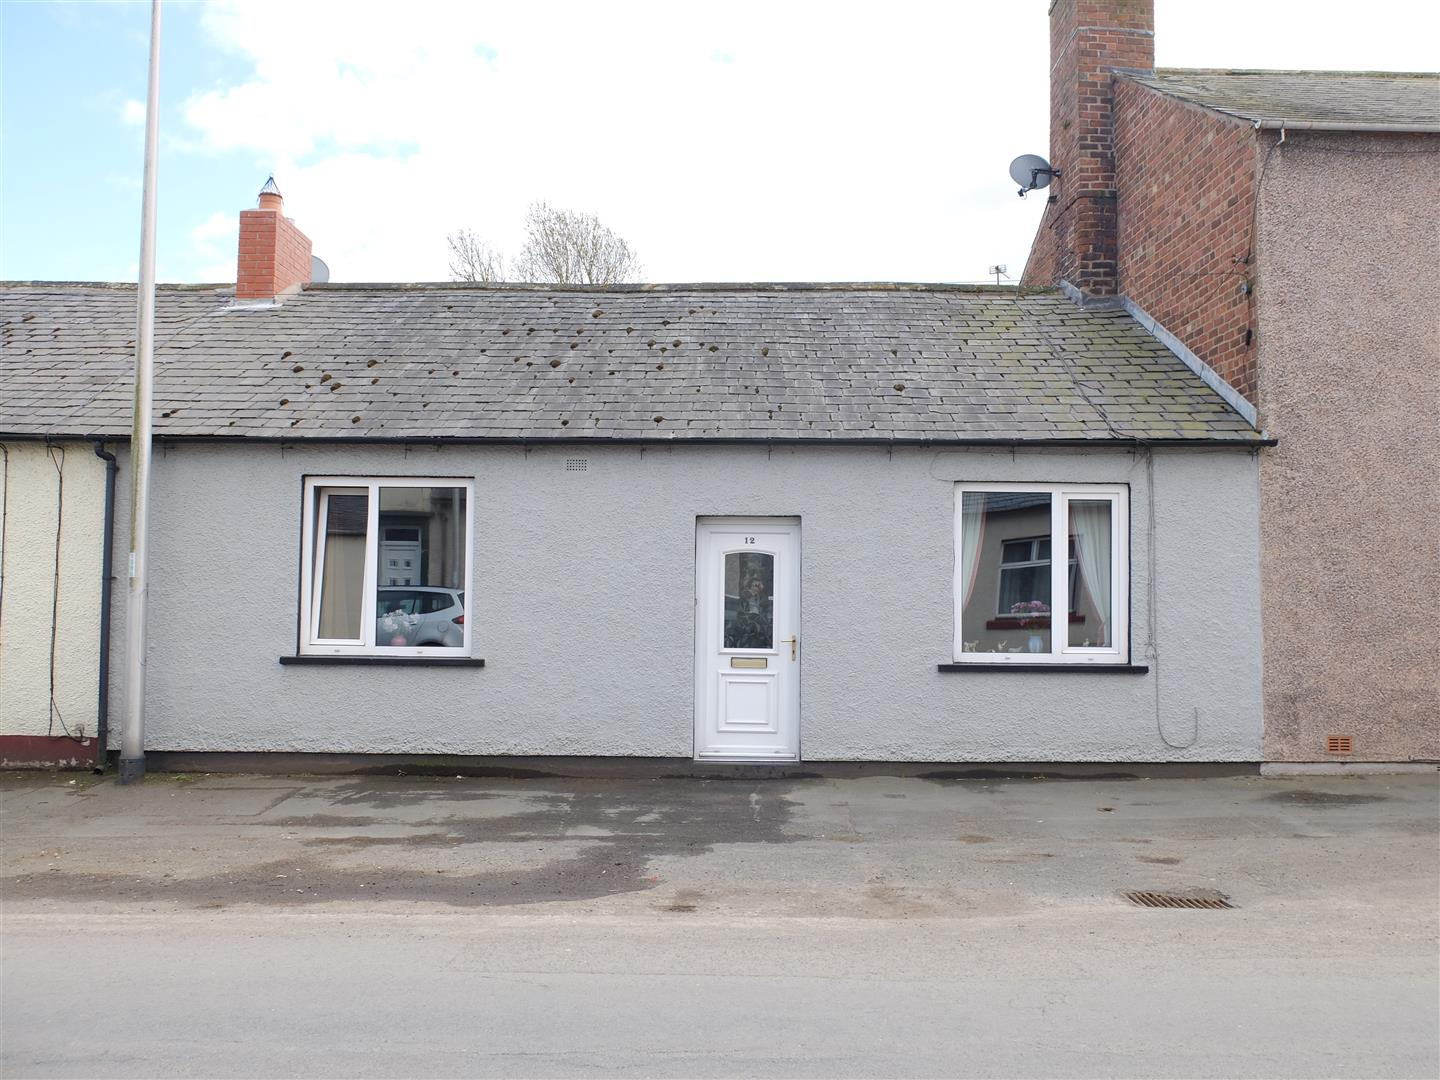 12 Mary Street Carlisle 2 Bedrooms Bungalow For Sale